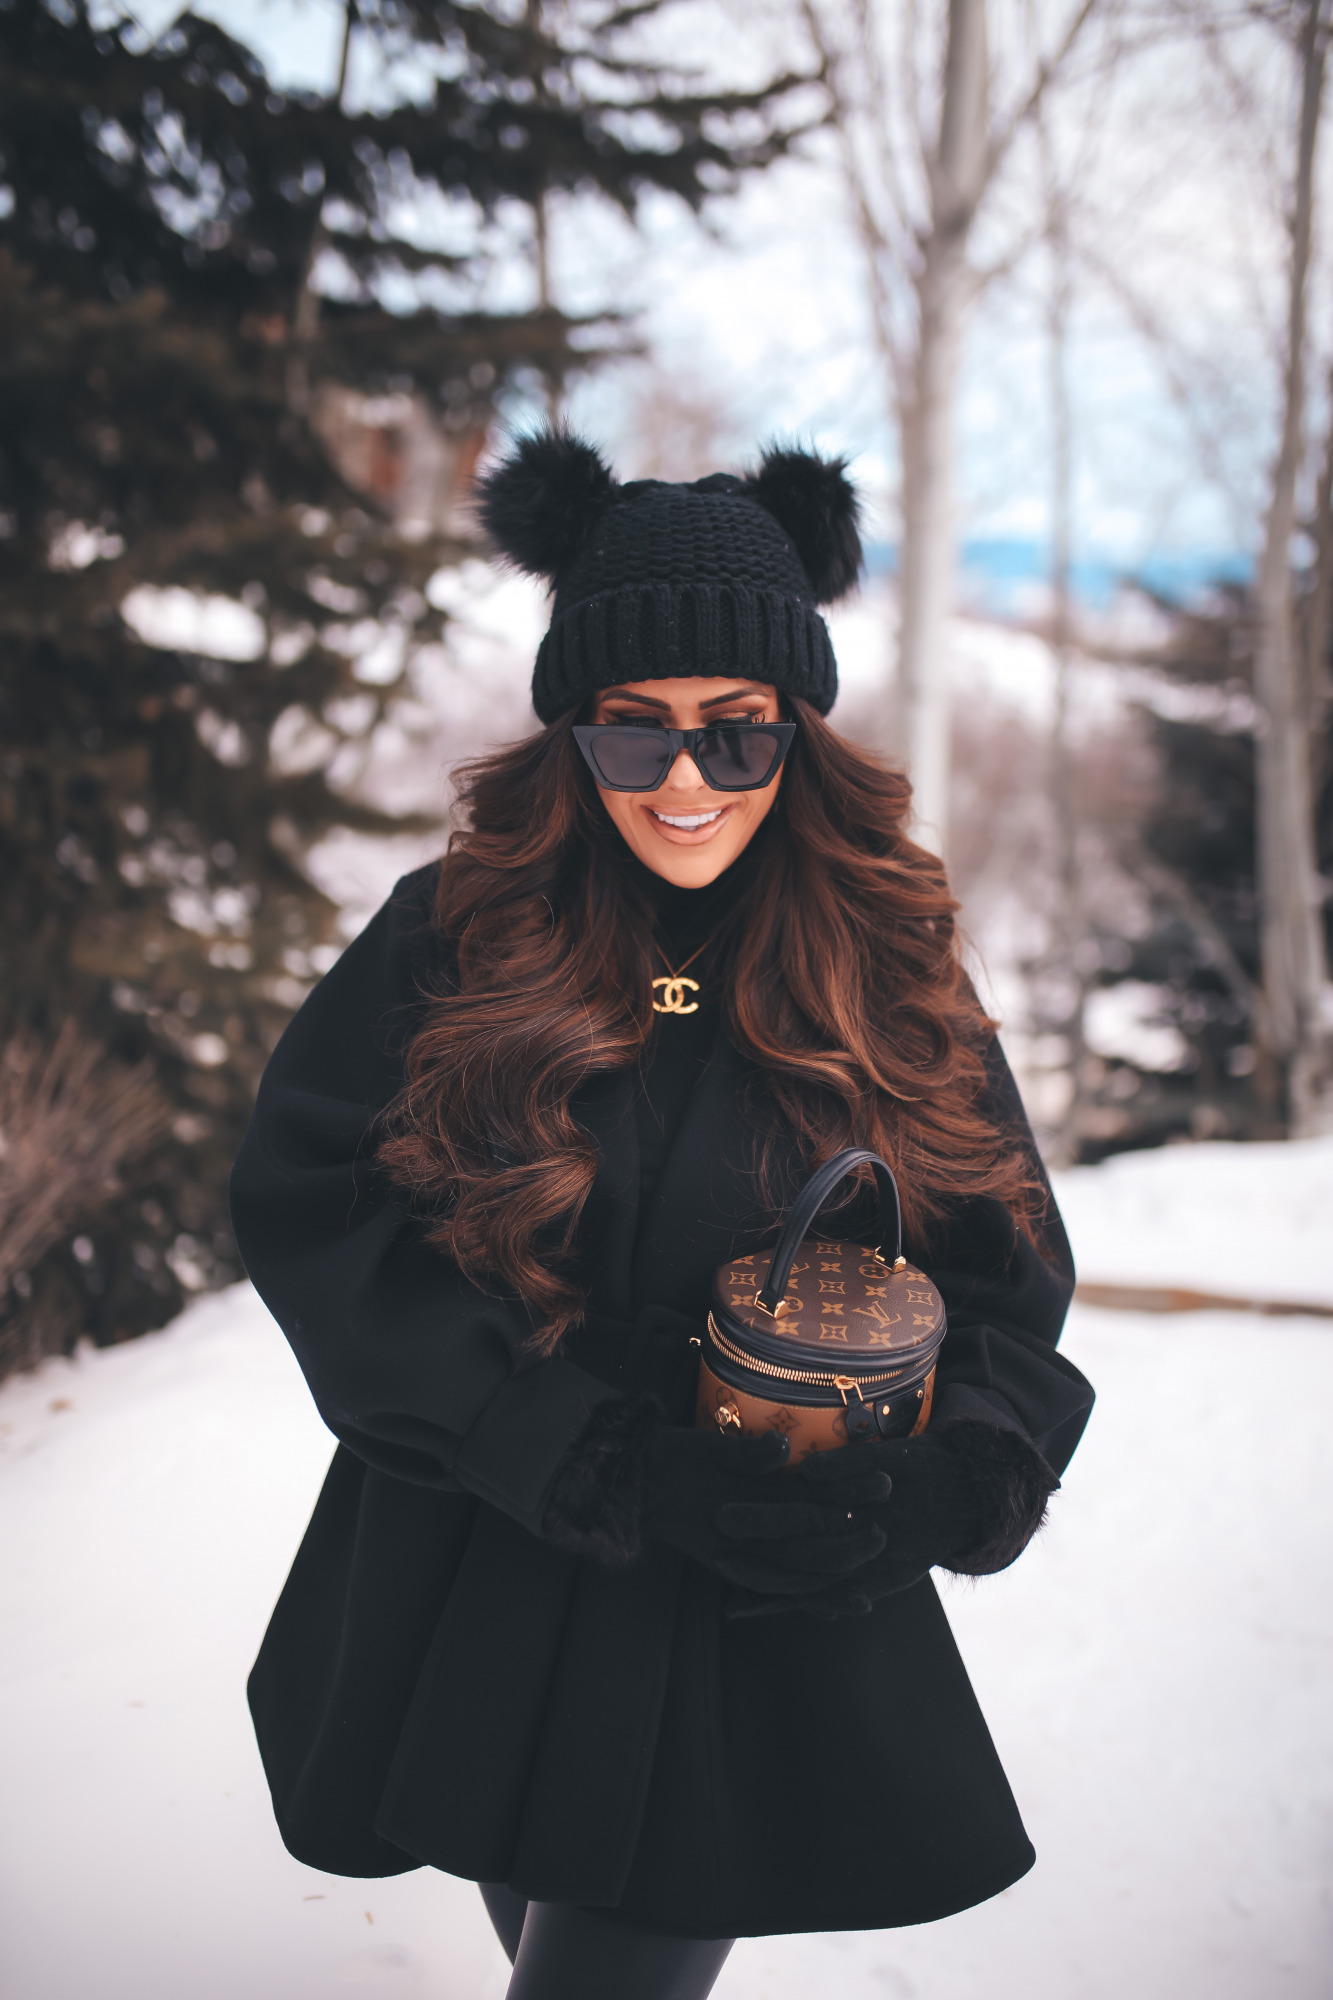 hair by chrissy extensions brunette balayage, louis vuitton cannes, jackson hole four seasons4 |Dressing Up by popular US fashion blog, The Sweetest Thing: image of Emily Gemma standing outside in the snow and wearing a Good American bodysuit, commando leggings, Chanel boots, Amazon sunglasses, Storets puff sleeve coat, Tasha double pom beanie, and holding a Louis Vuitton bag.